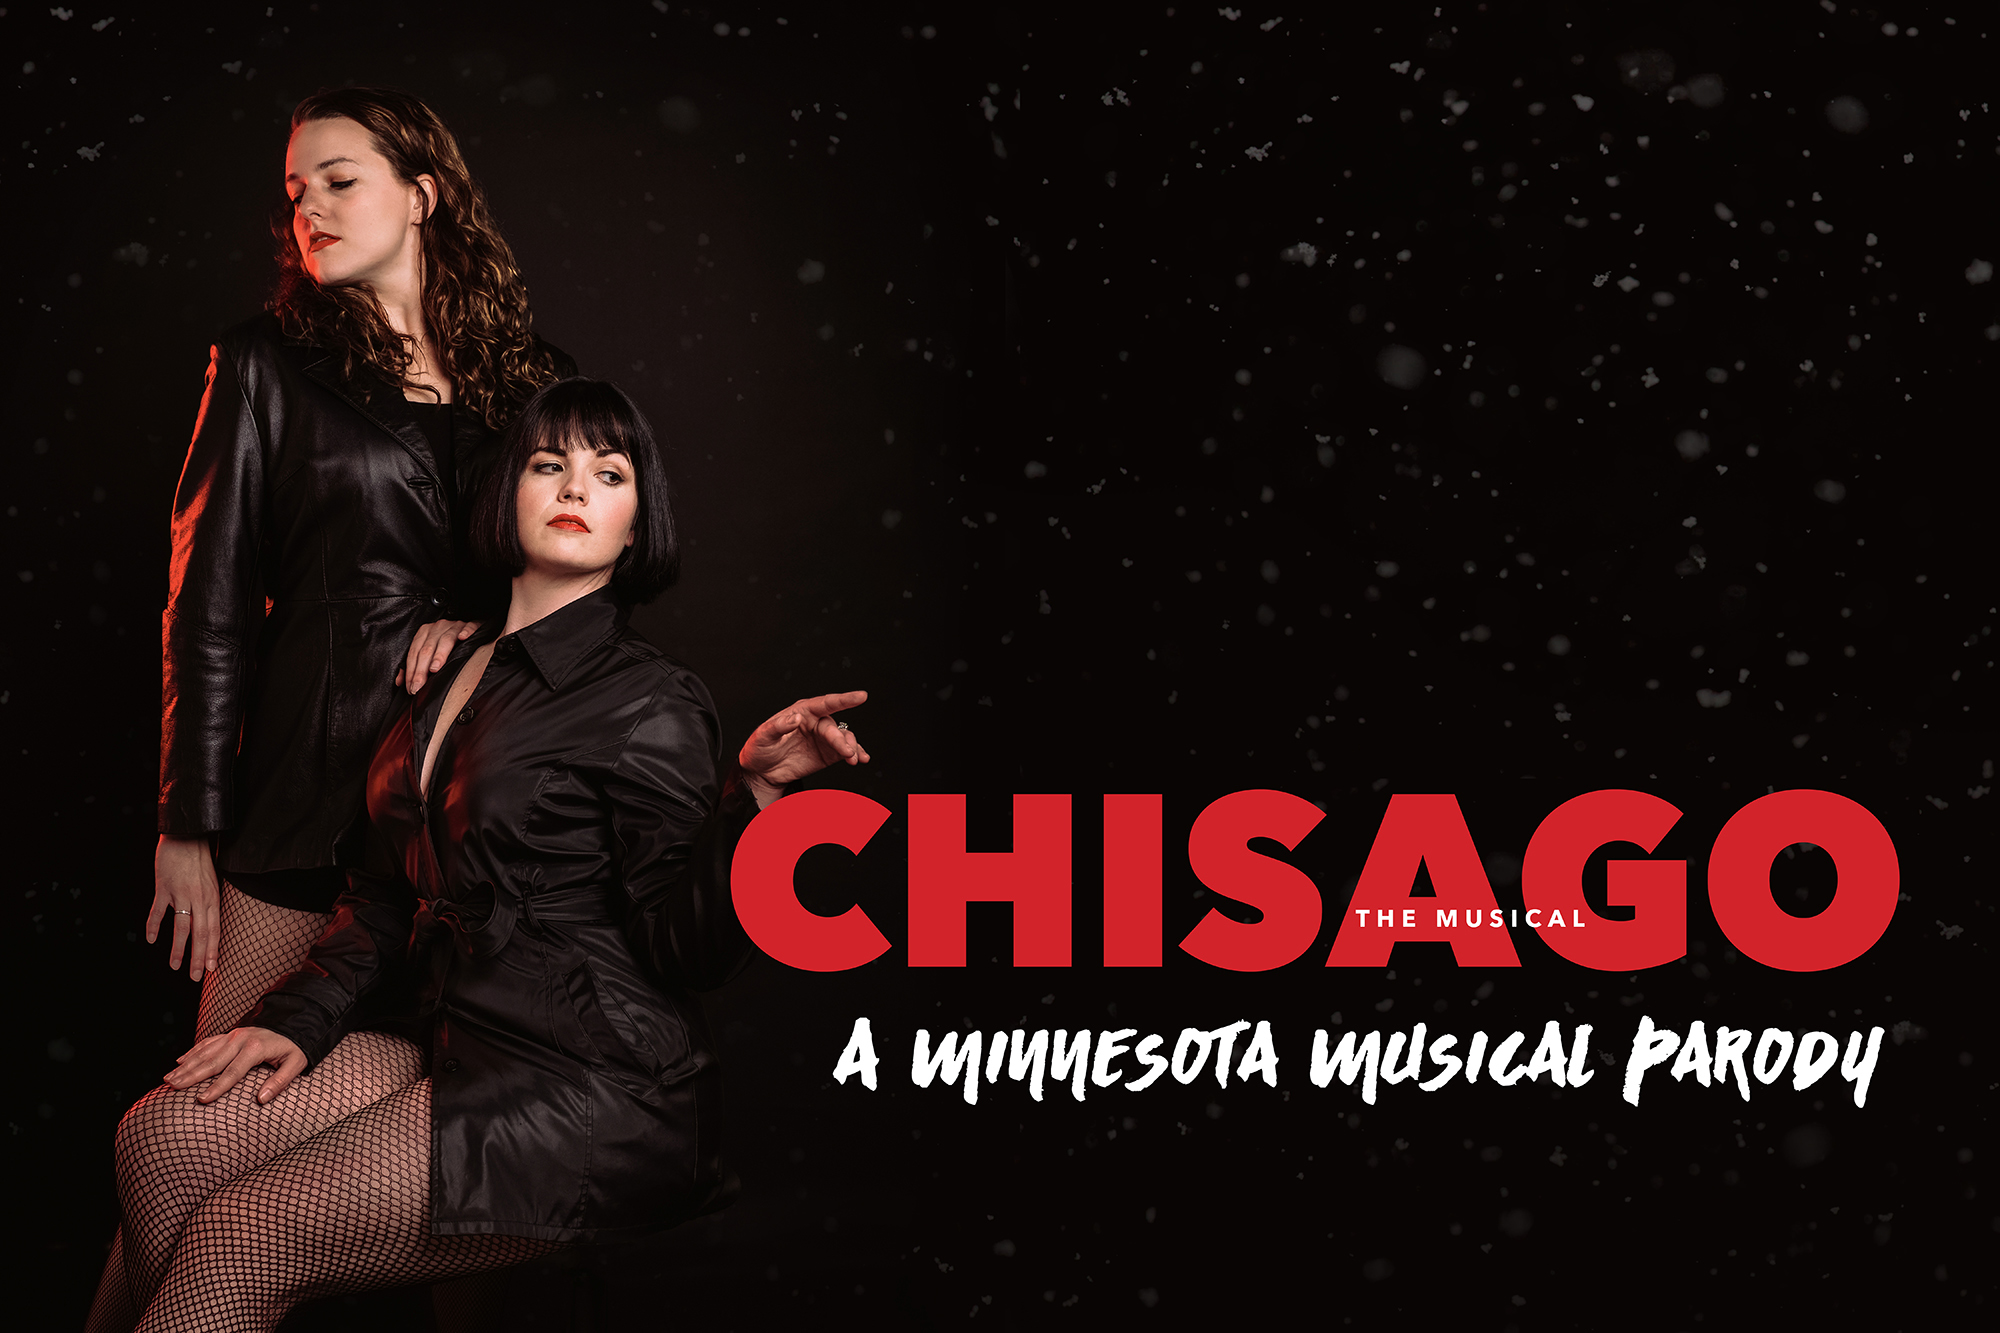 201908071730-527|0807|1730|5502560|Chisago: The Musical|5519958